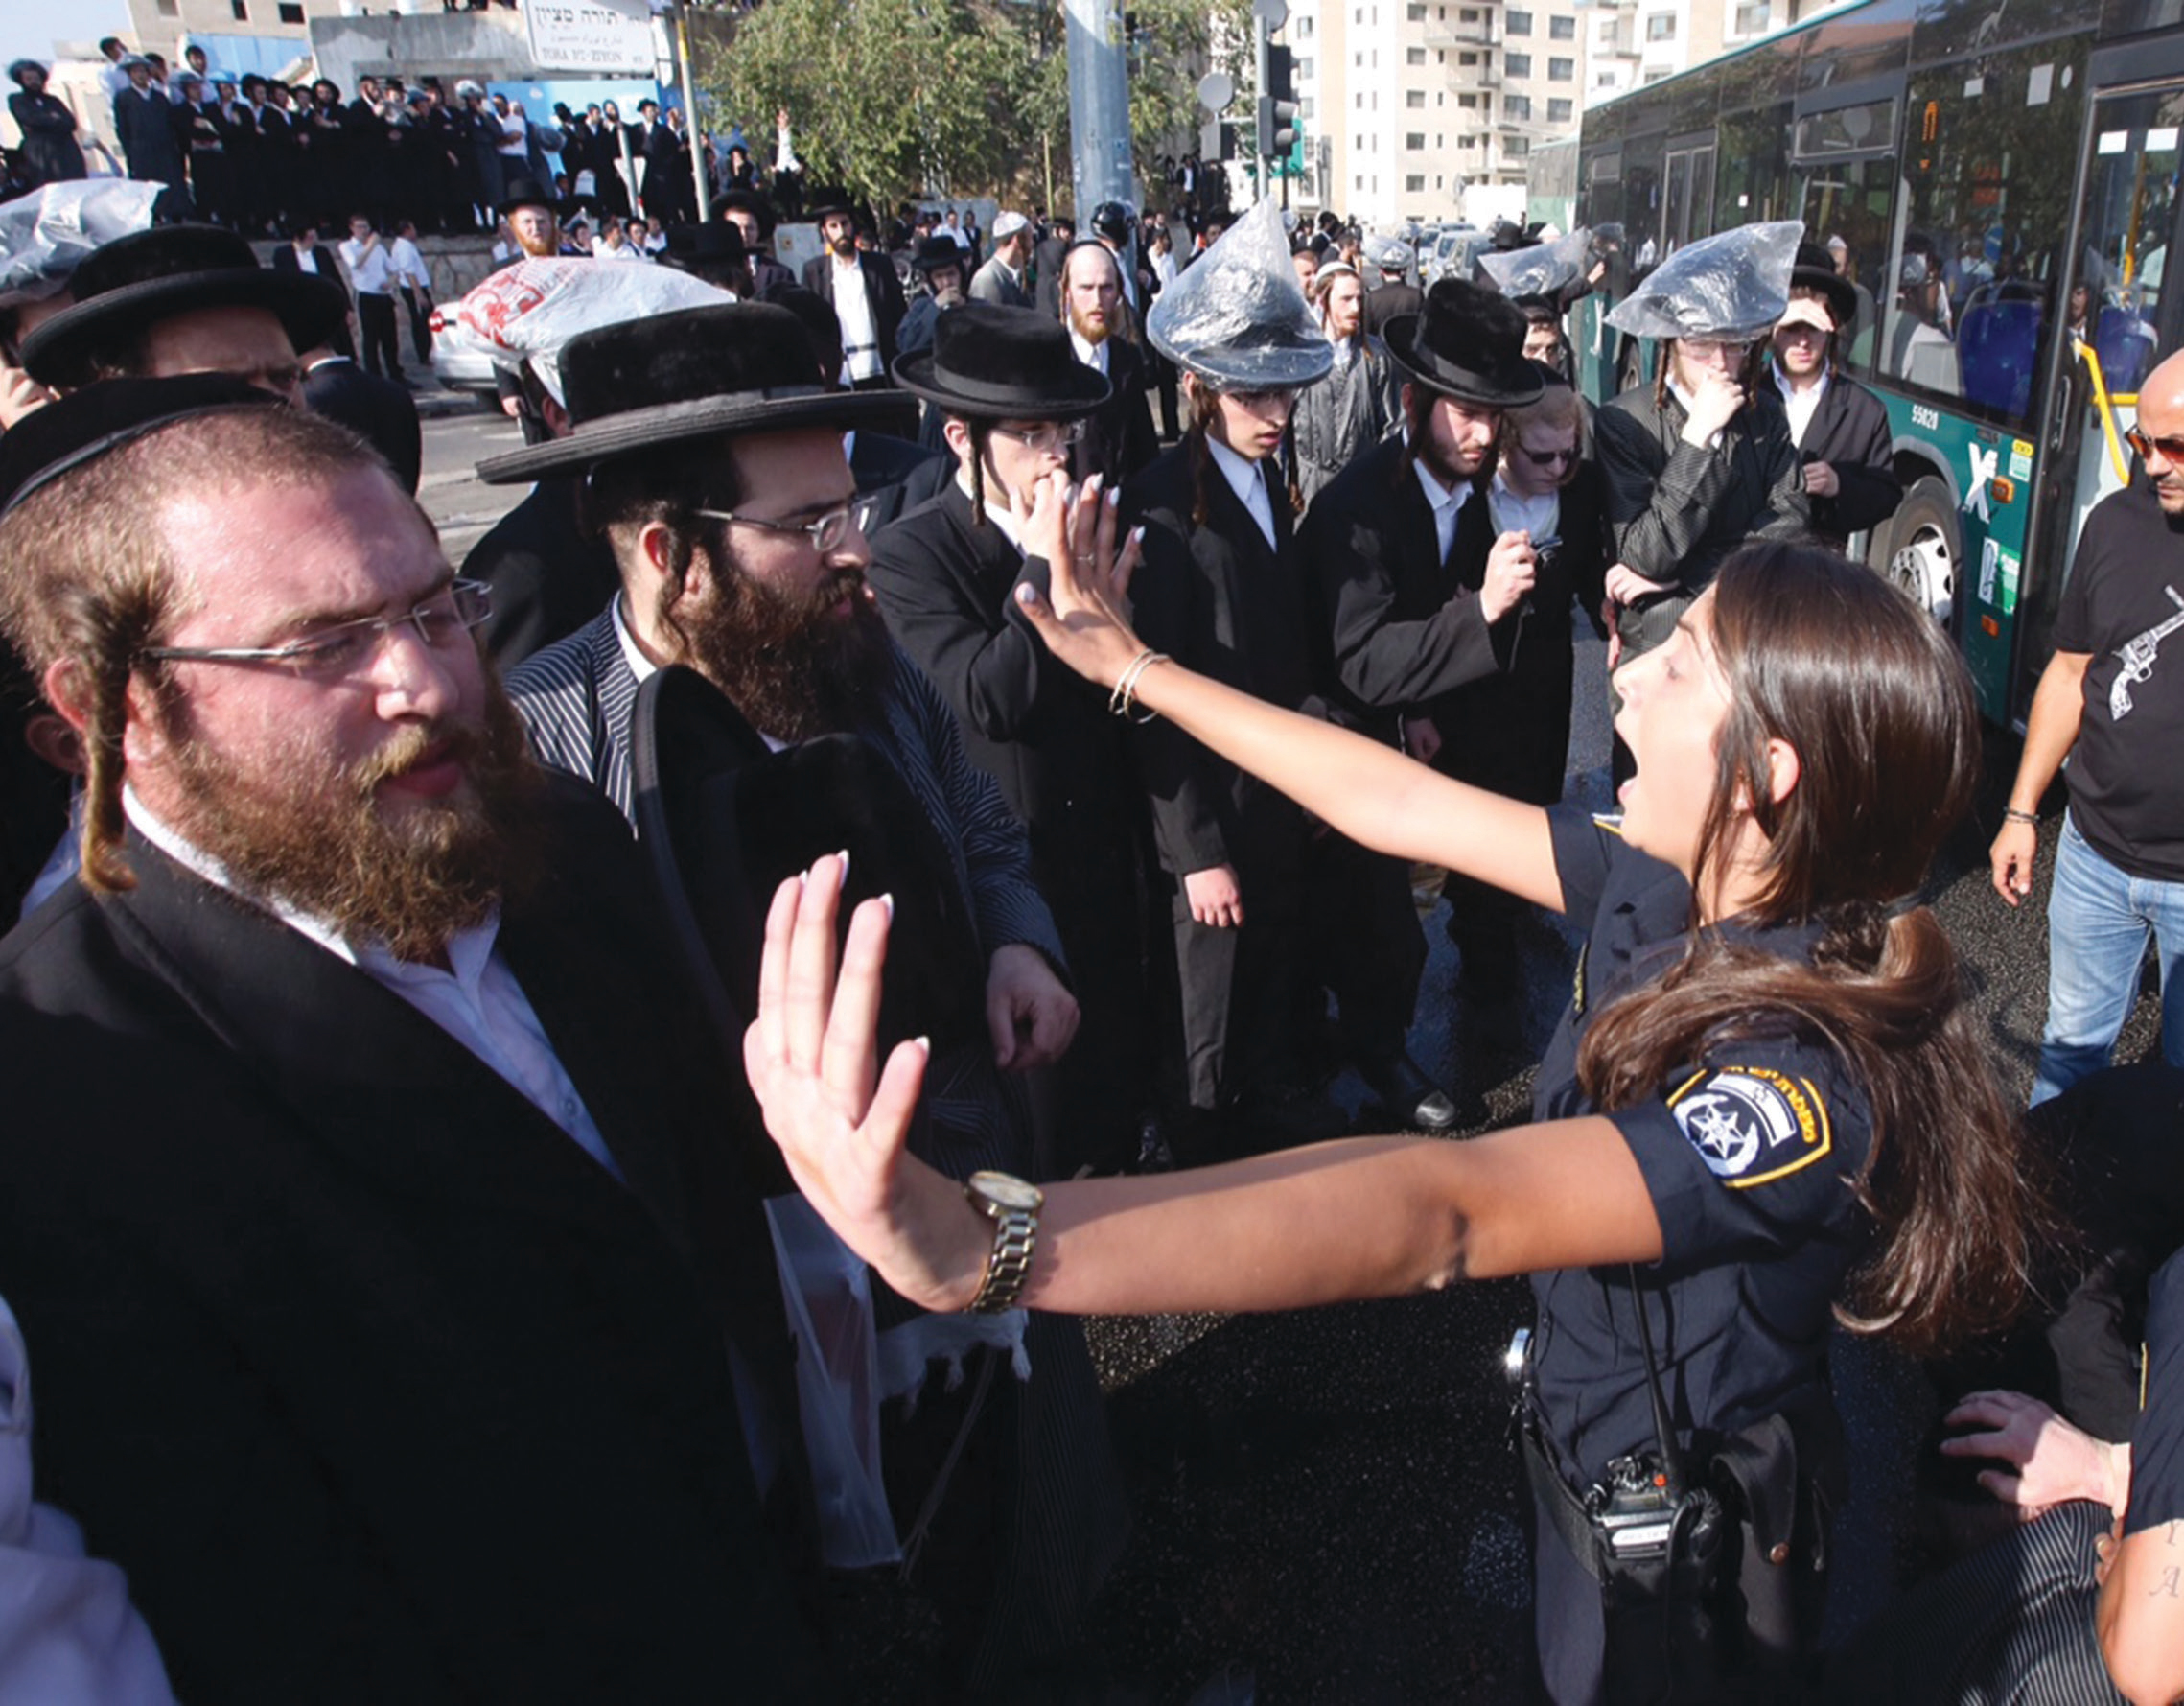 Haredi rioters affiliated with extremist communities block traffic at Jerusalem junction. (credit: Marc Israel Sellem)